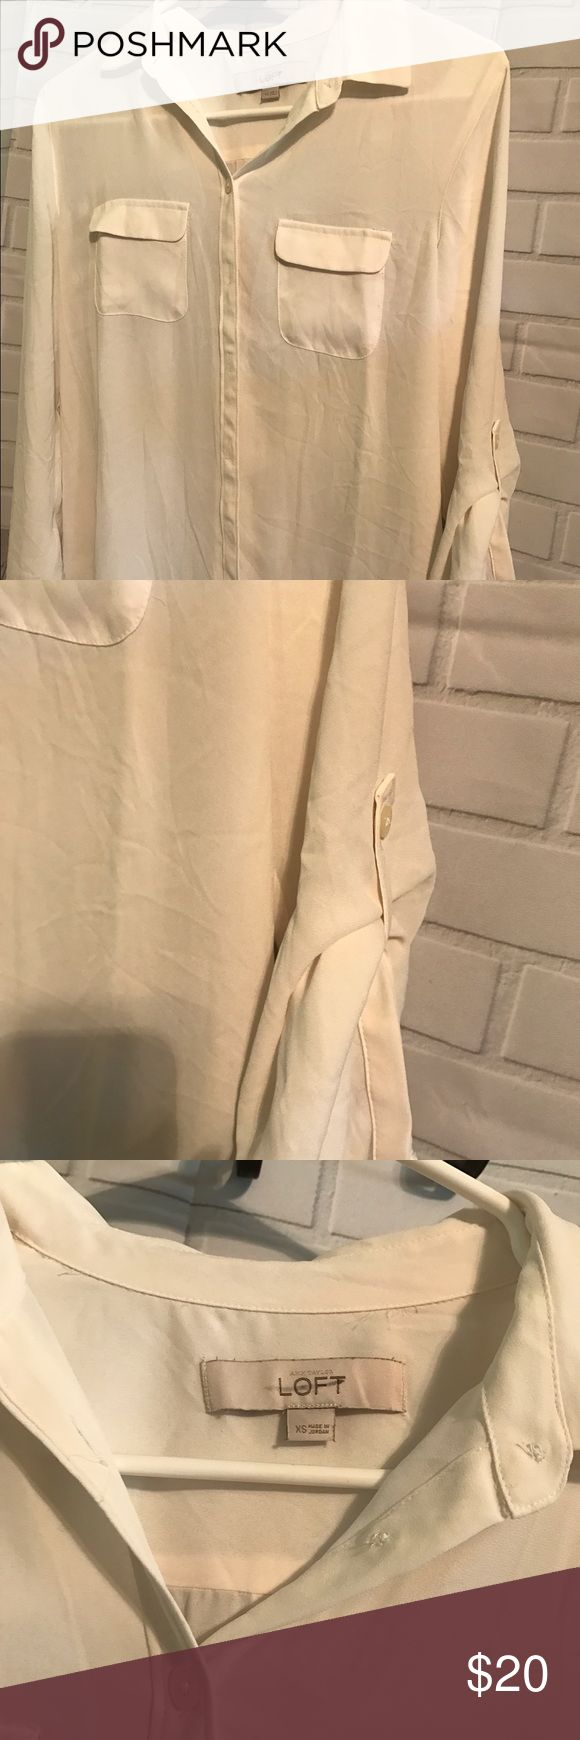 Anne Taylor Loft Cream button up sleeve blouse Nice Cream blouse worn one time, u can button up sleeve to wear long or 3/4 length, smoke free home anne taylor loft Tops Blouses